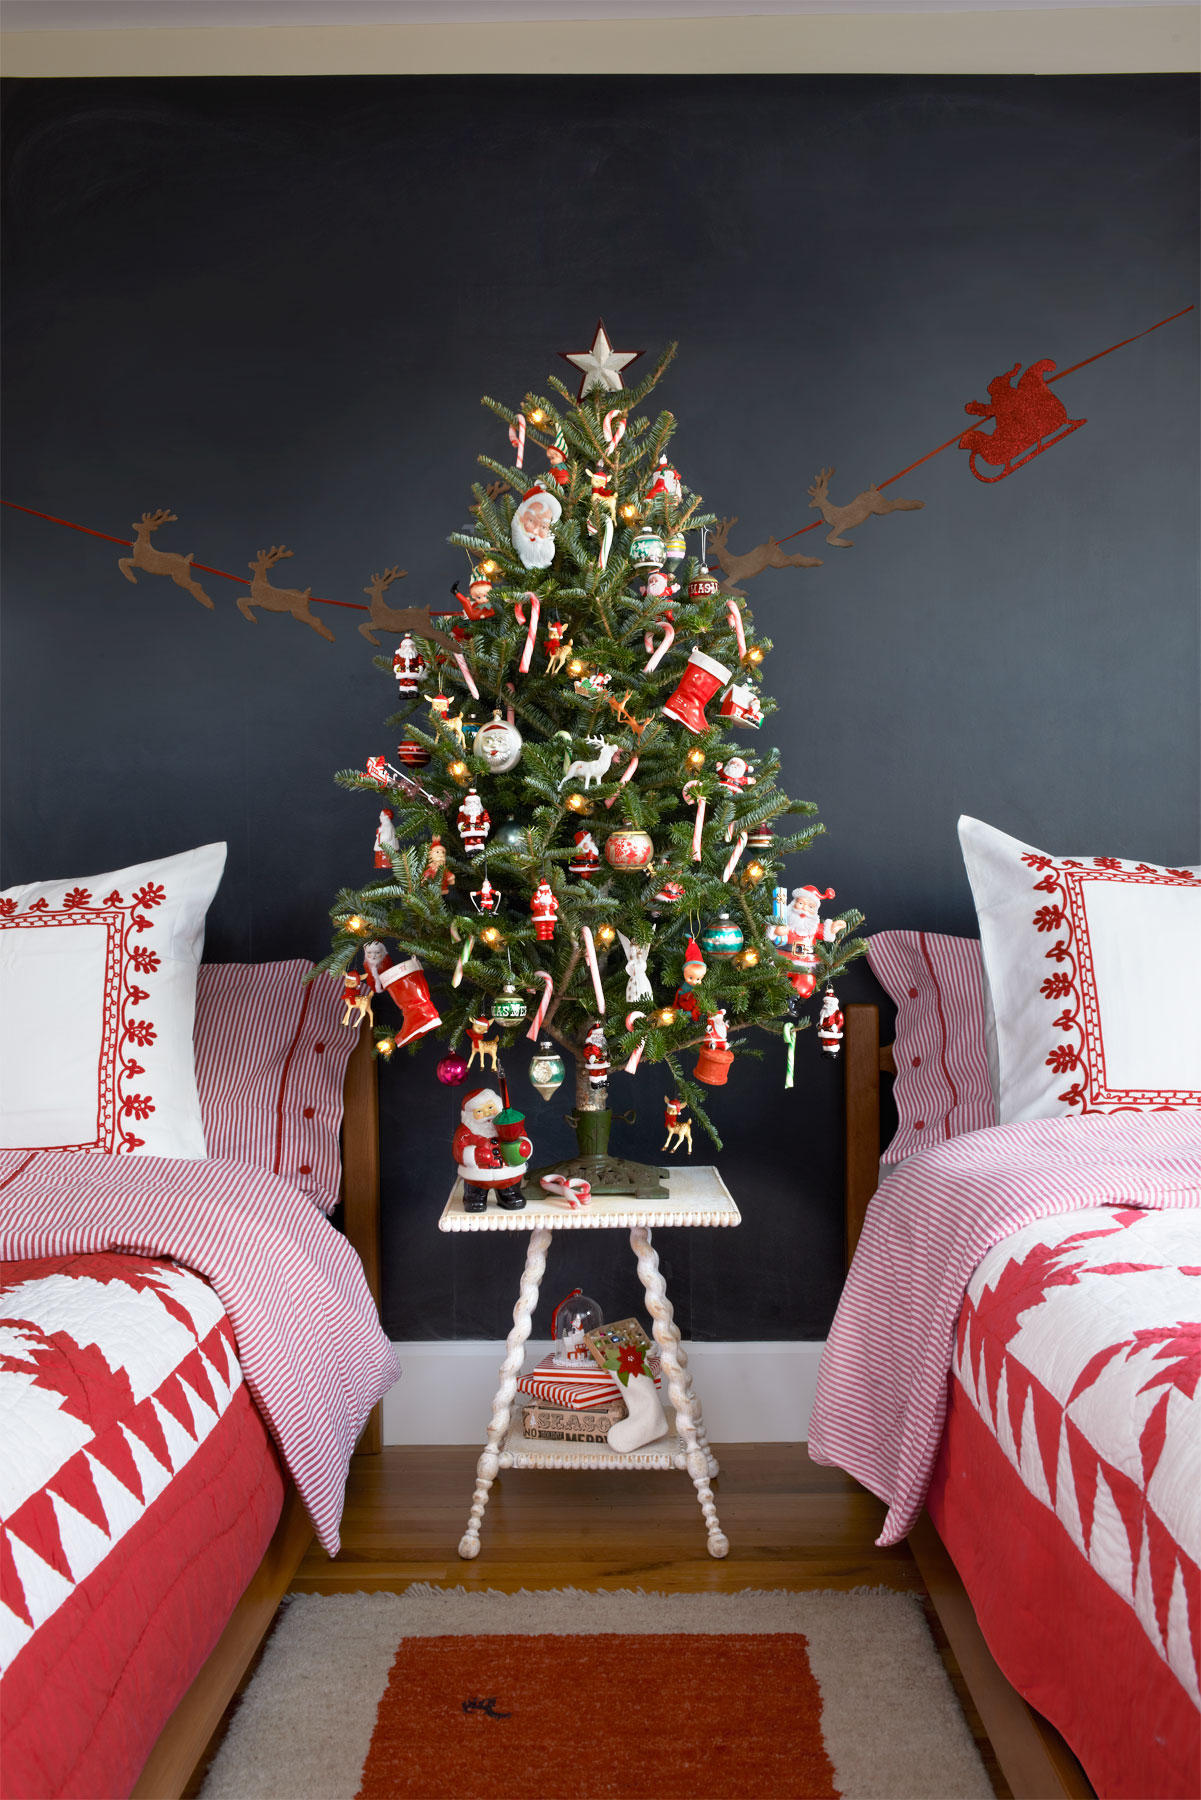 Christmas Themes For Decorating 60+ best christmas tree decorating ideas - how to decorate a